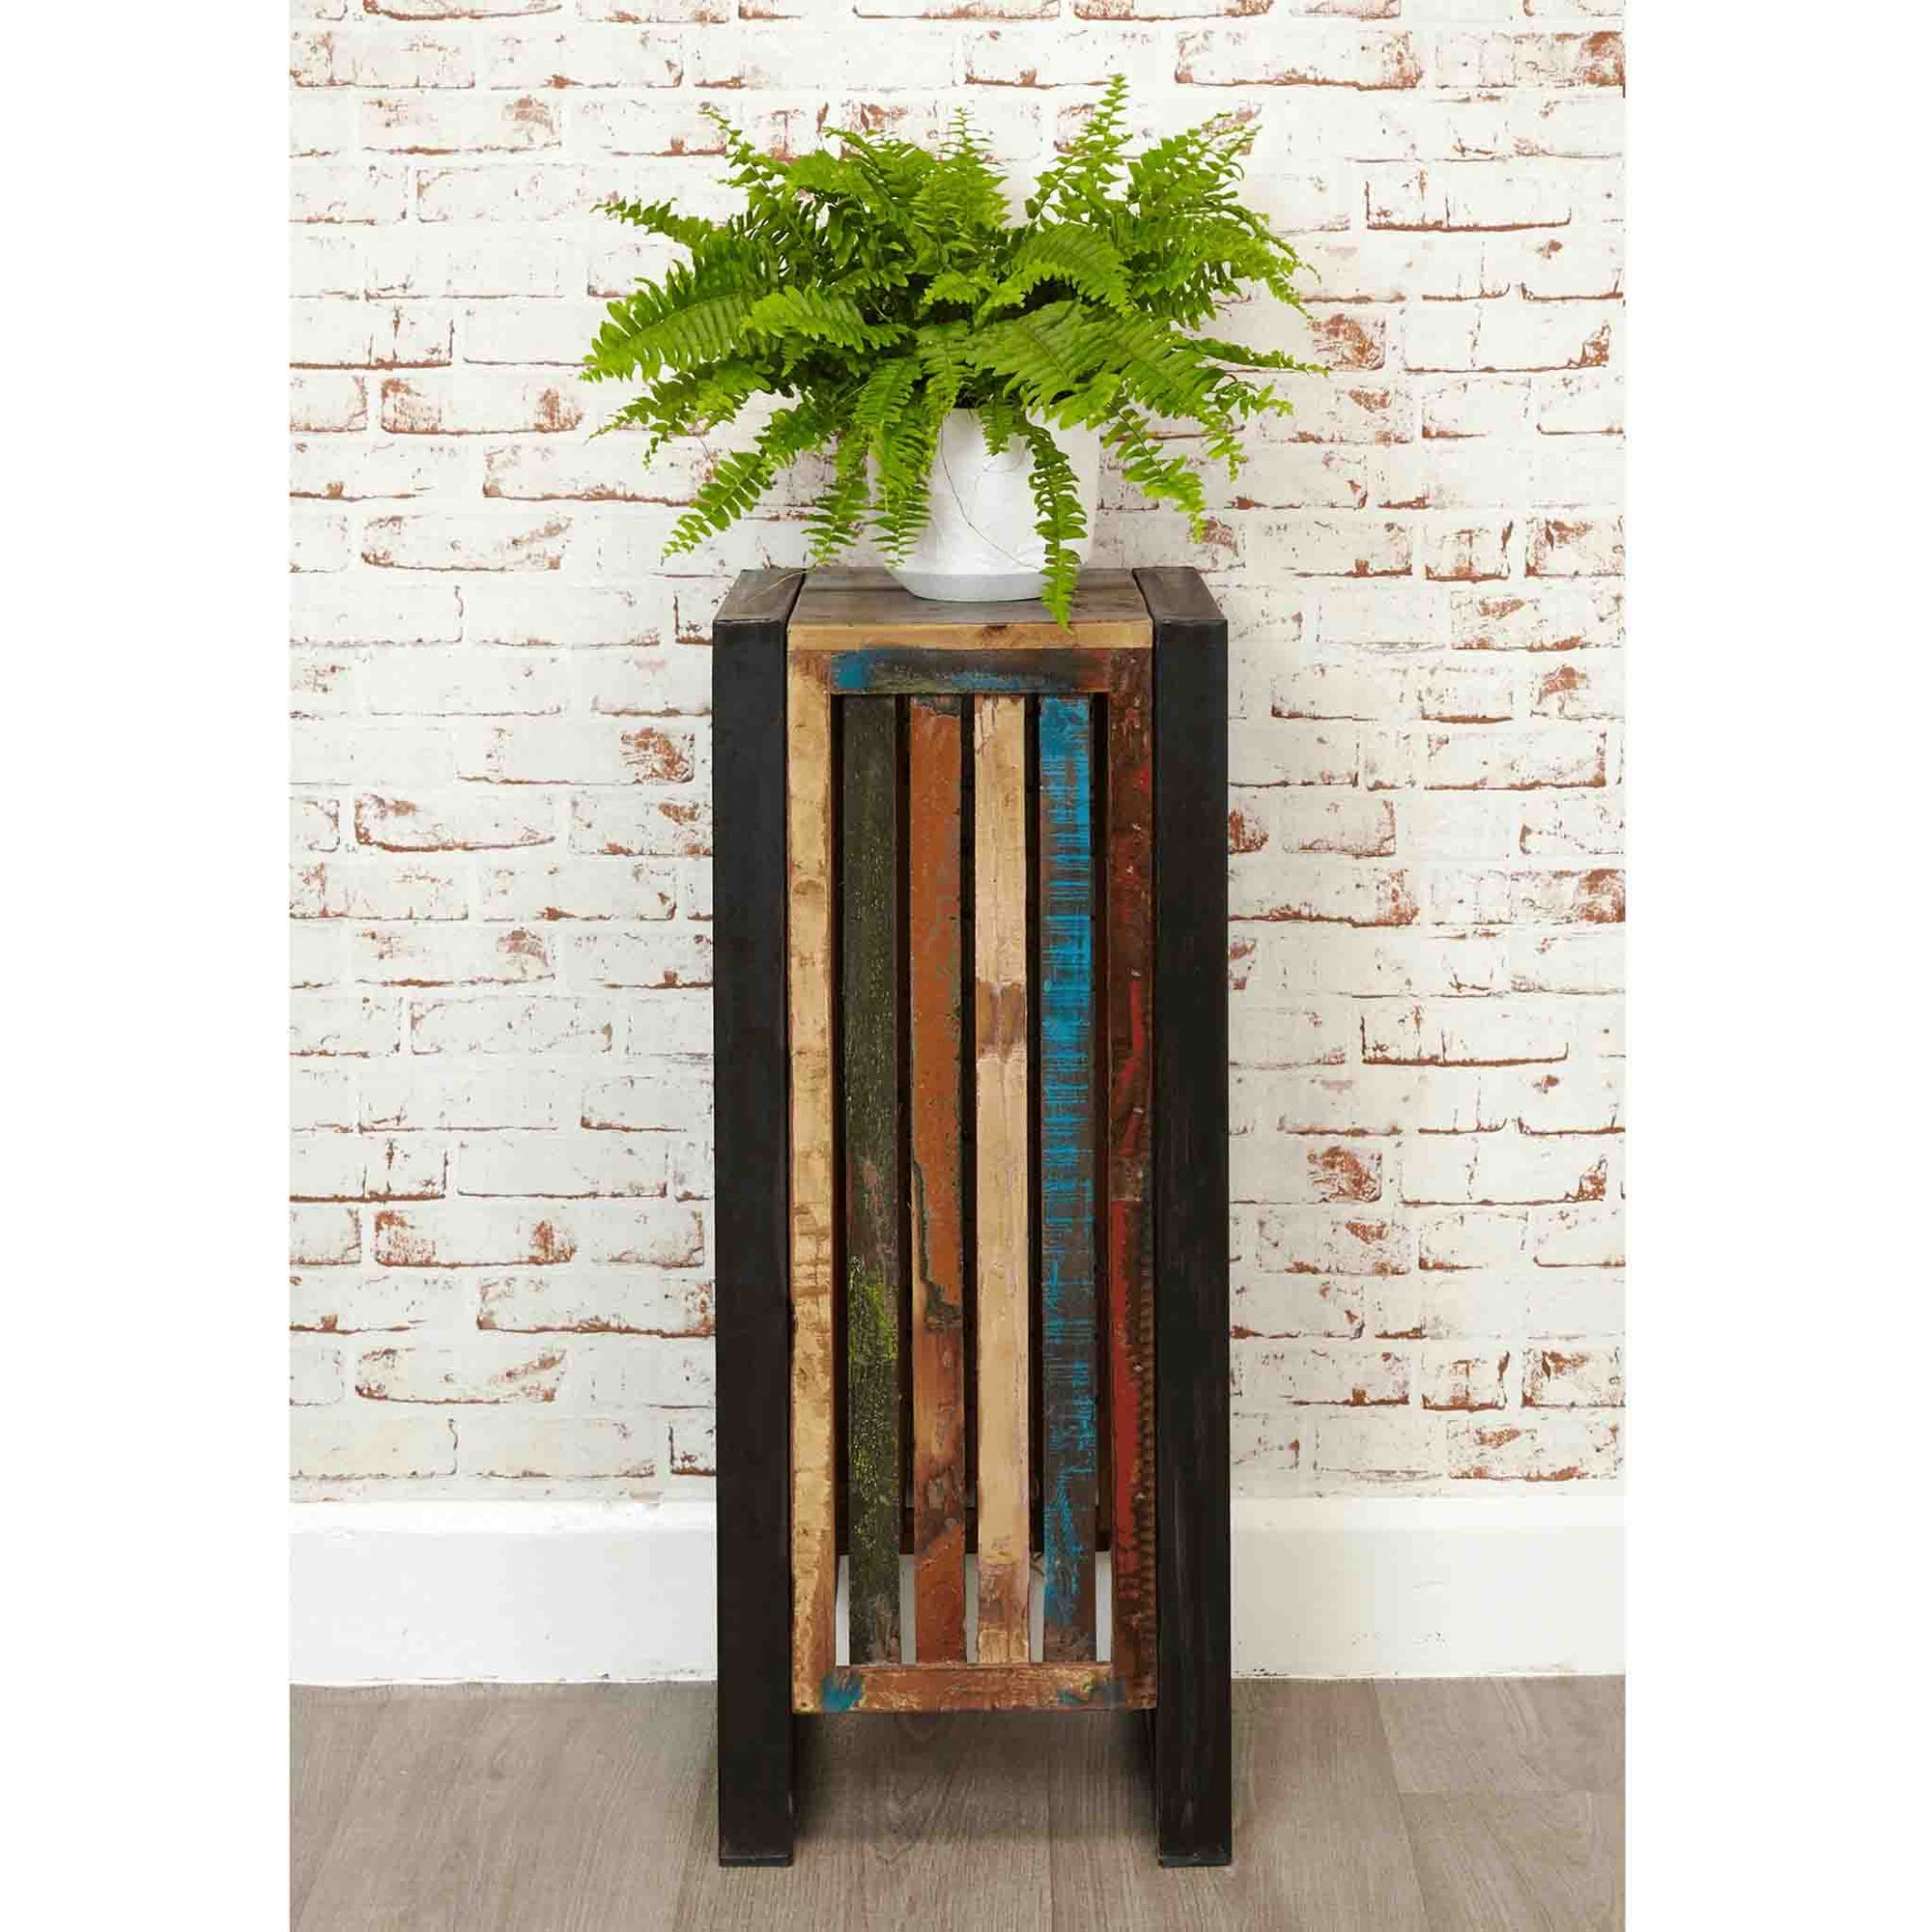 The Urban Chic Industrial Reclaimed Wood Plant Stand from Roseland Furniture